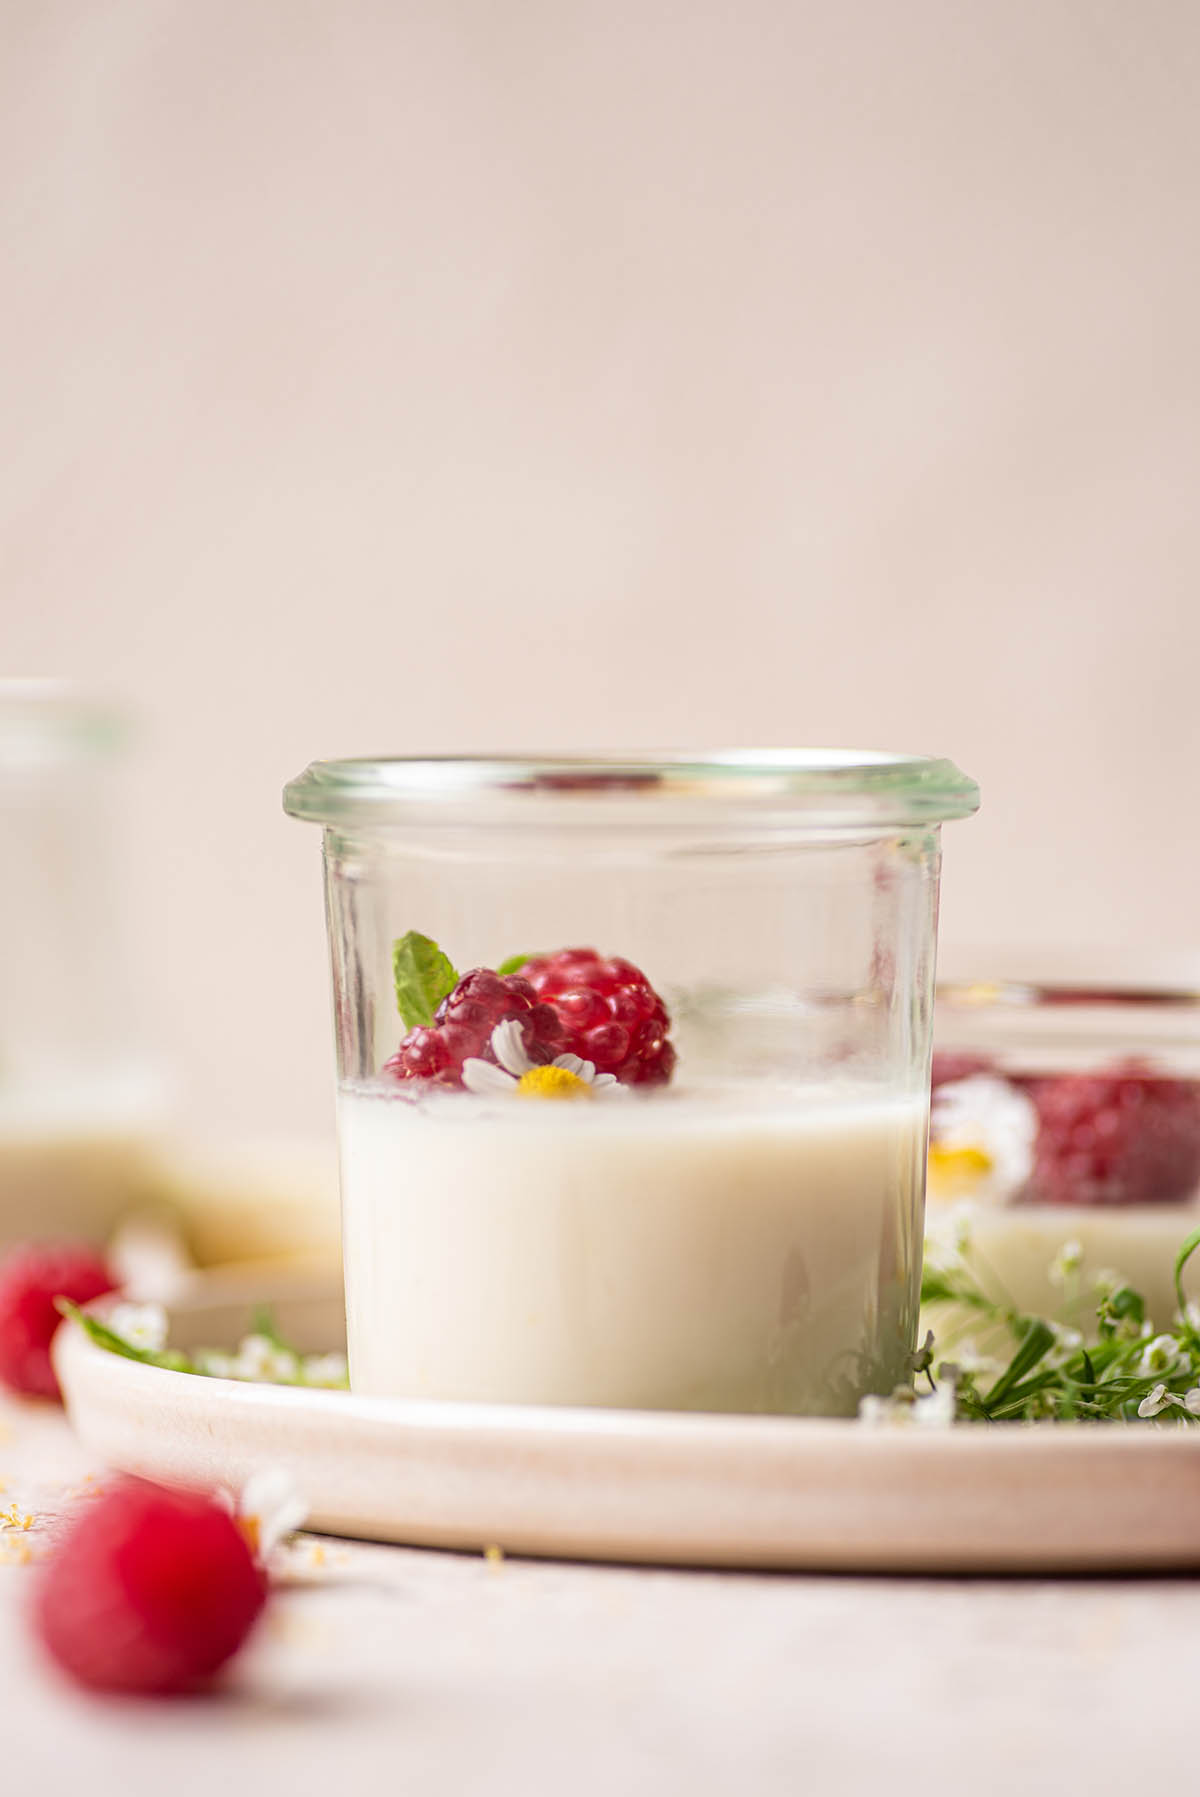 A small glass jar half filled with white pudding.